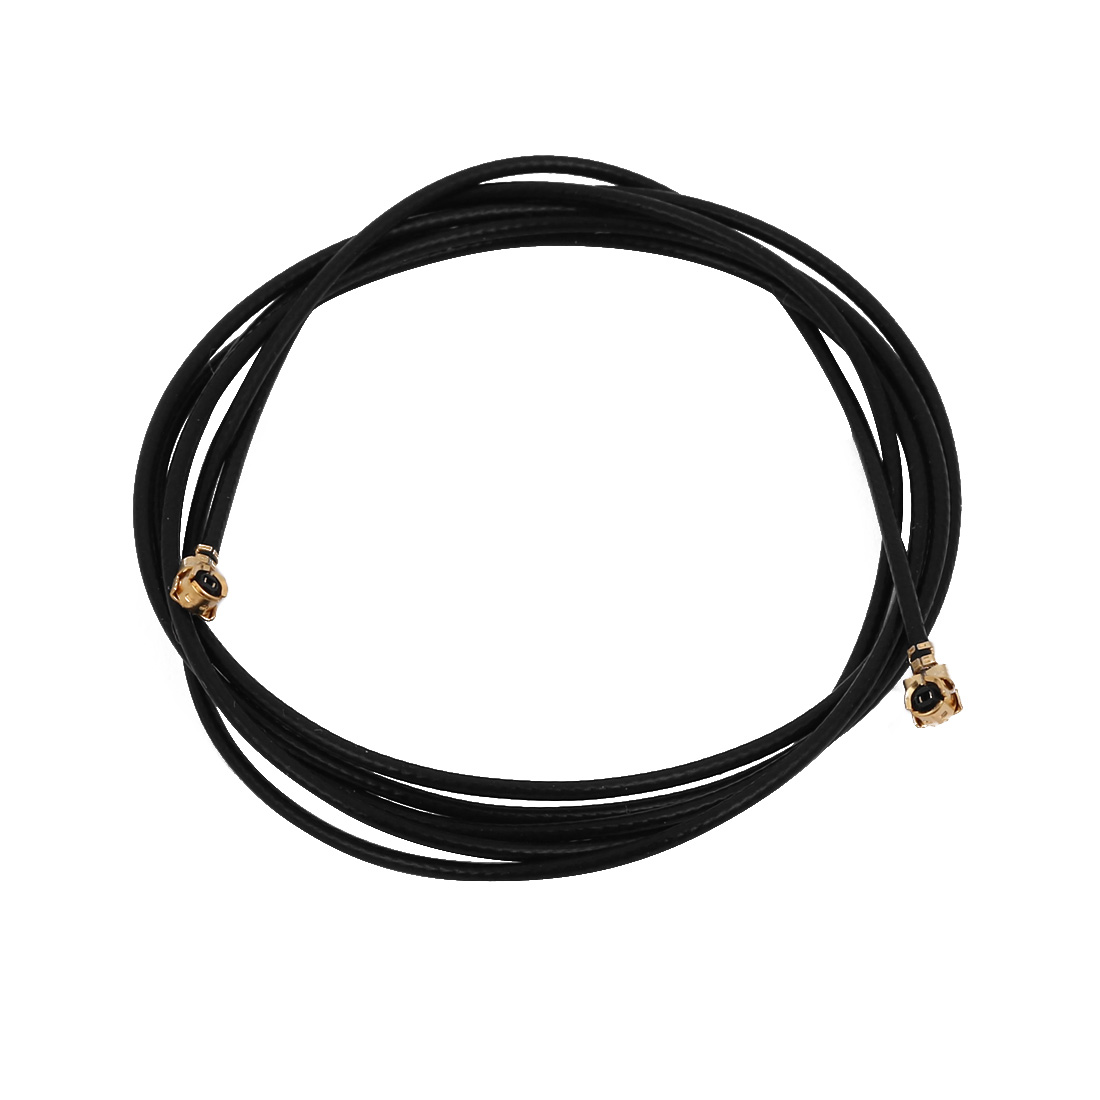 RF1.13 IPEX 1.0 to IPEX 1.0 Antenna WiFi Pigtail Cable 80cm Length for Router